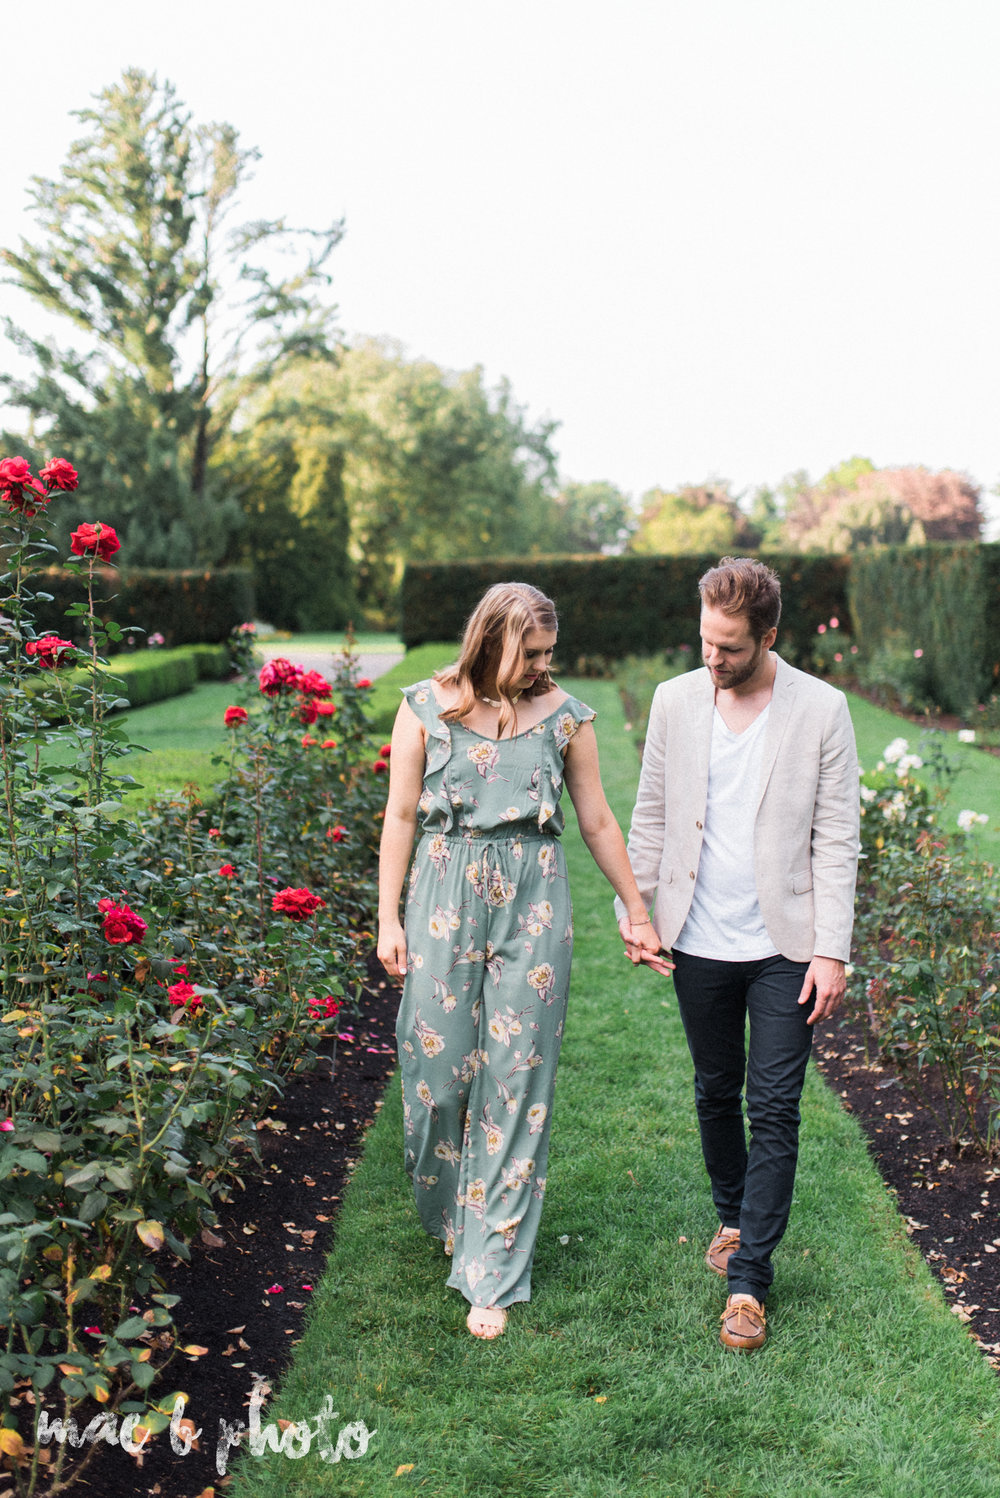 lauren and steve's summer engagement session at the rose gardens and lanterman's mill in mill creek park in youngstown ohio photographed by youngstown wedding photographer mae b photo-11.jpg